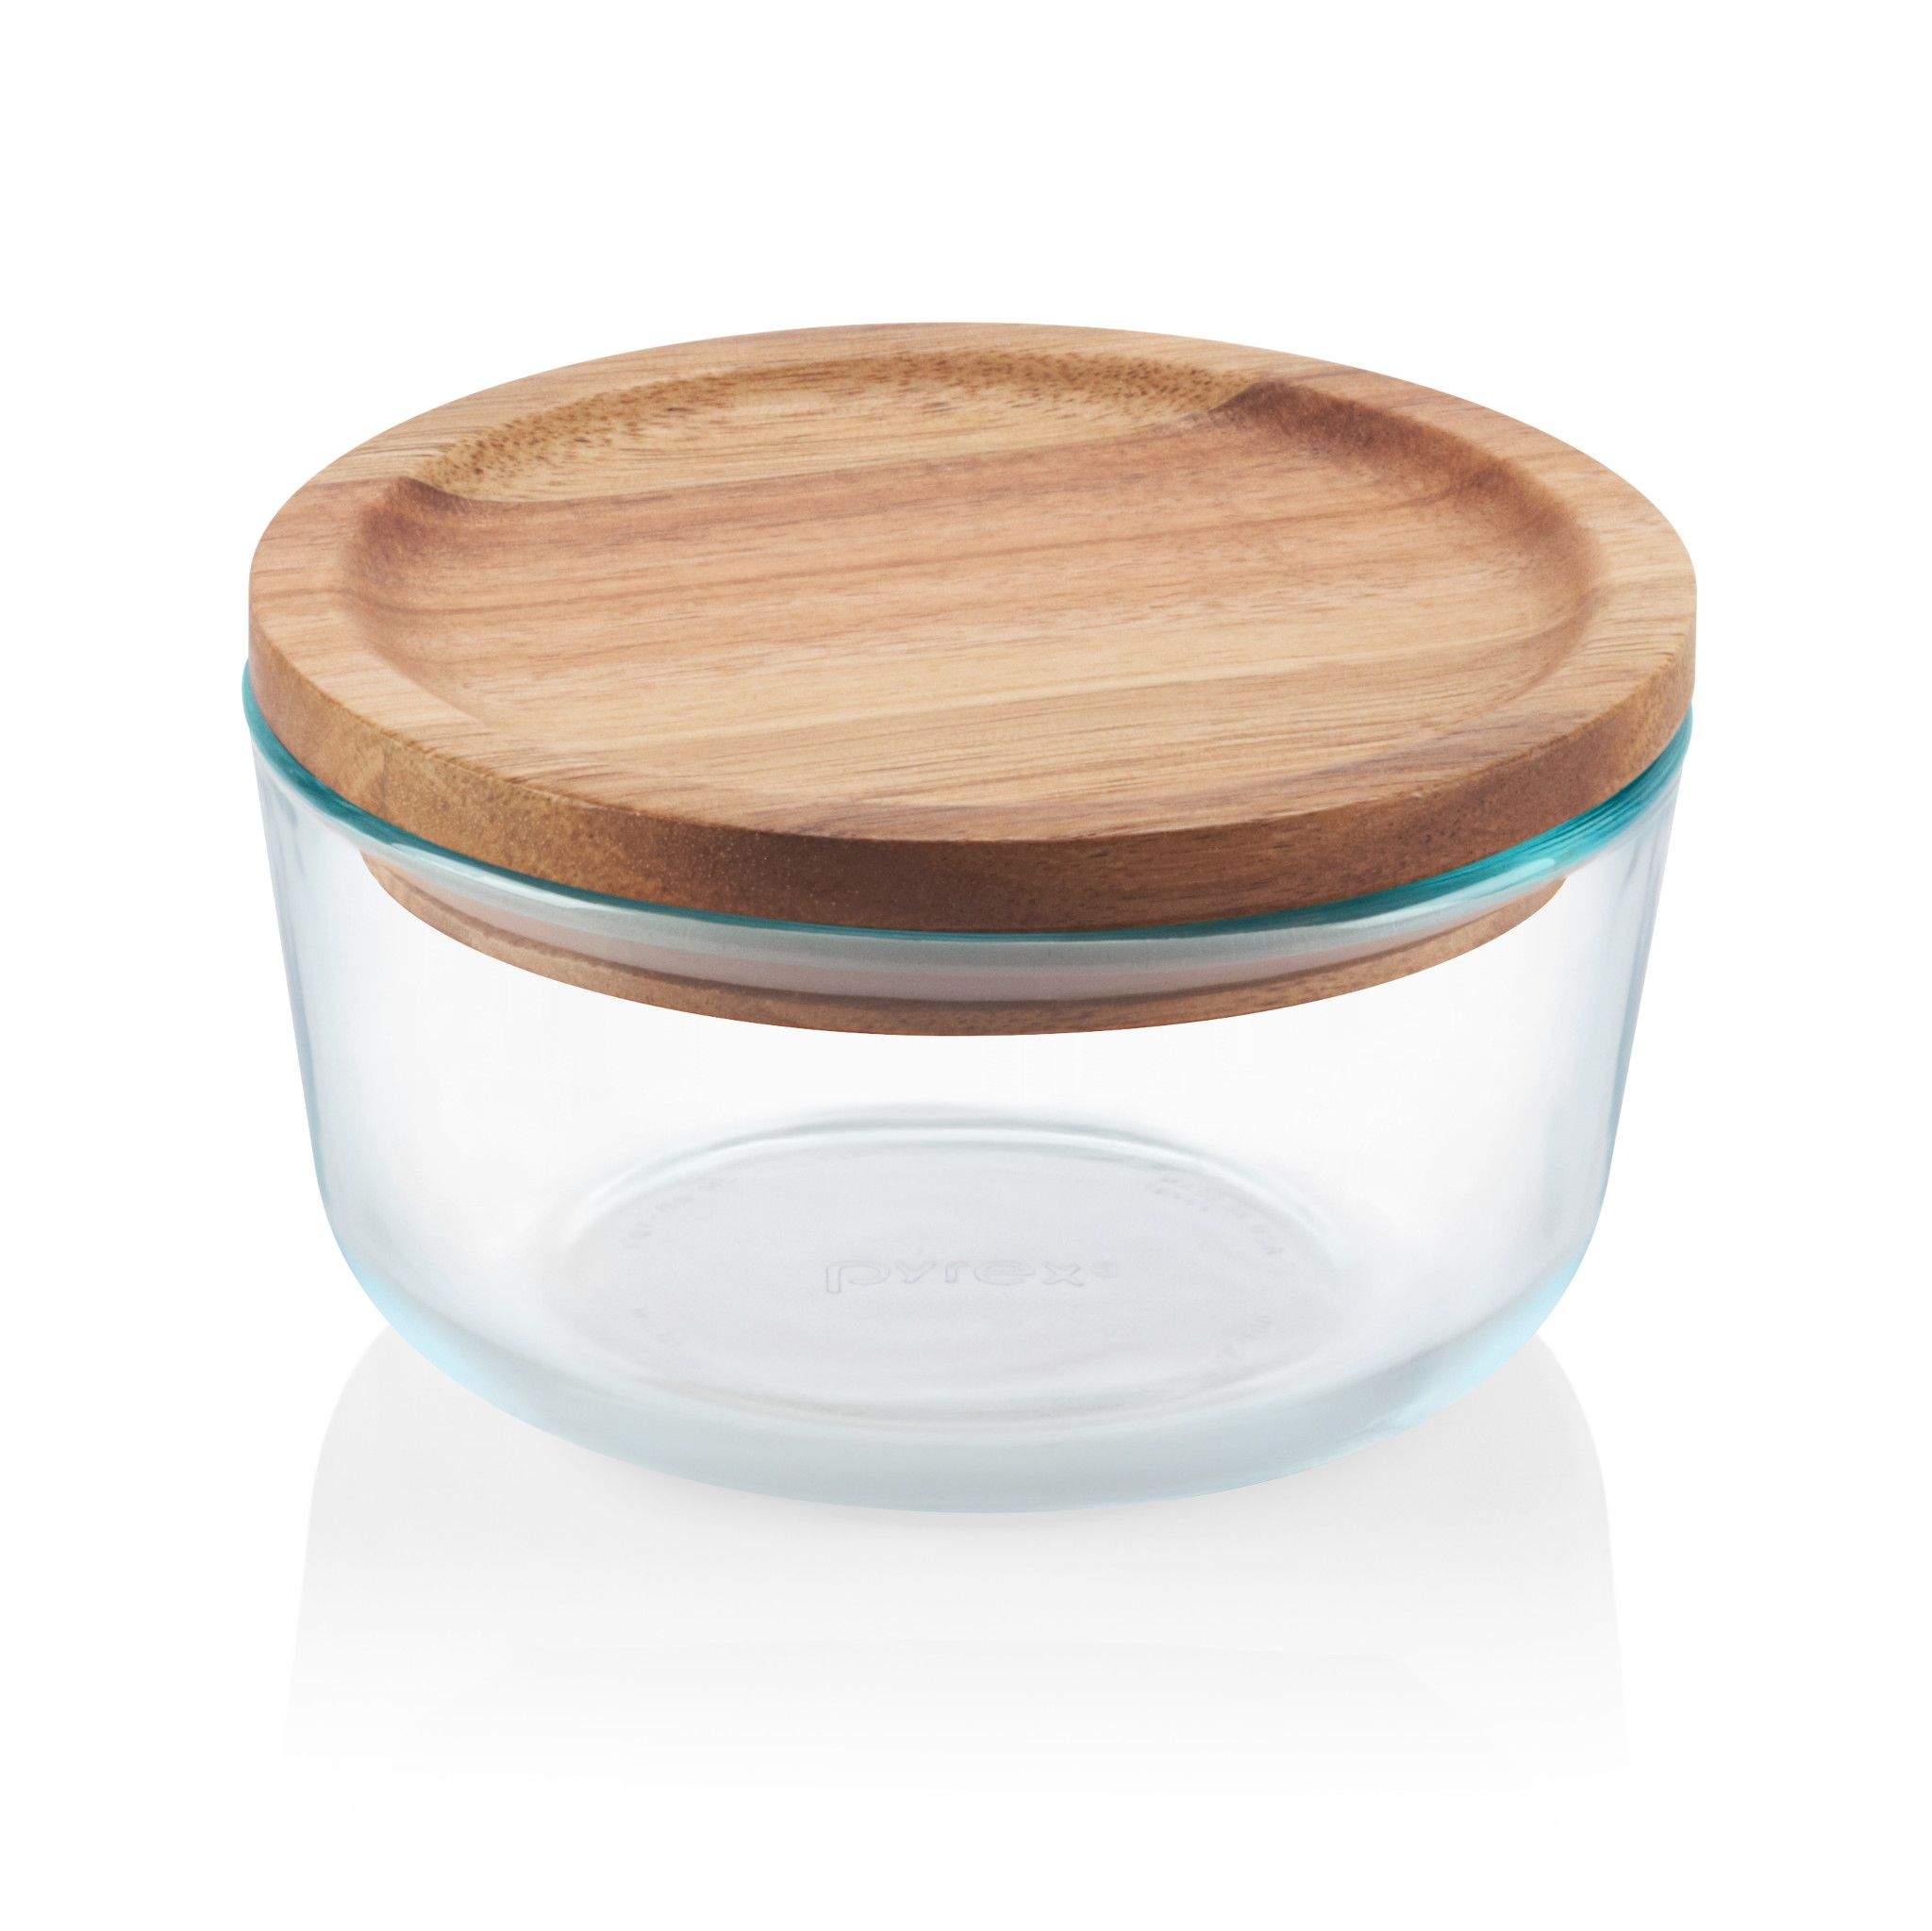 4-cup Glass Food Storage Container with Wood Lid